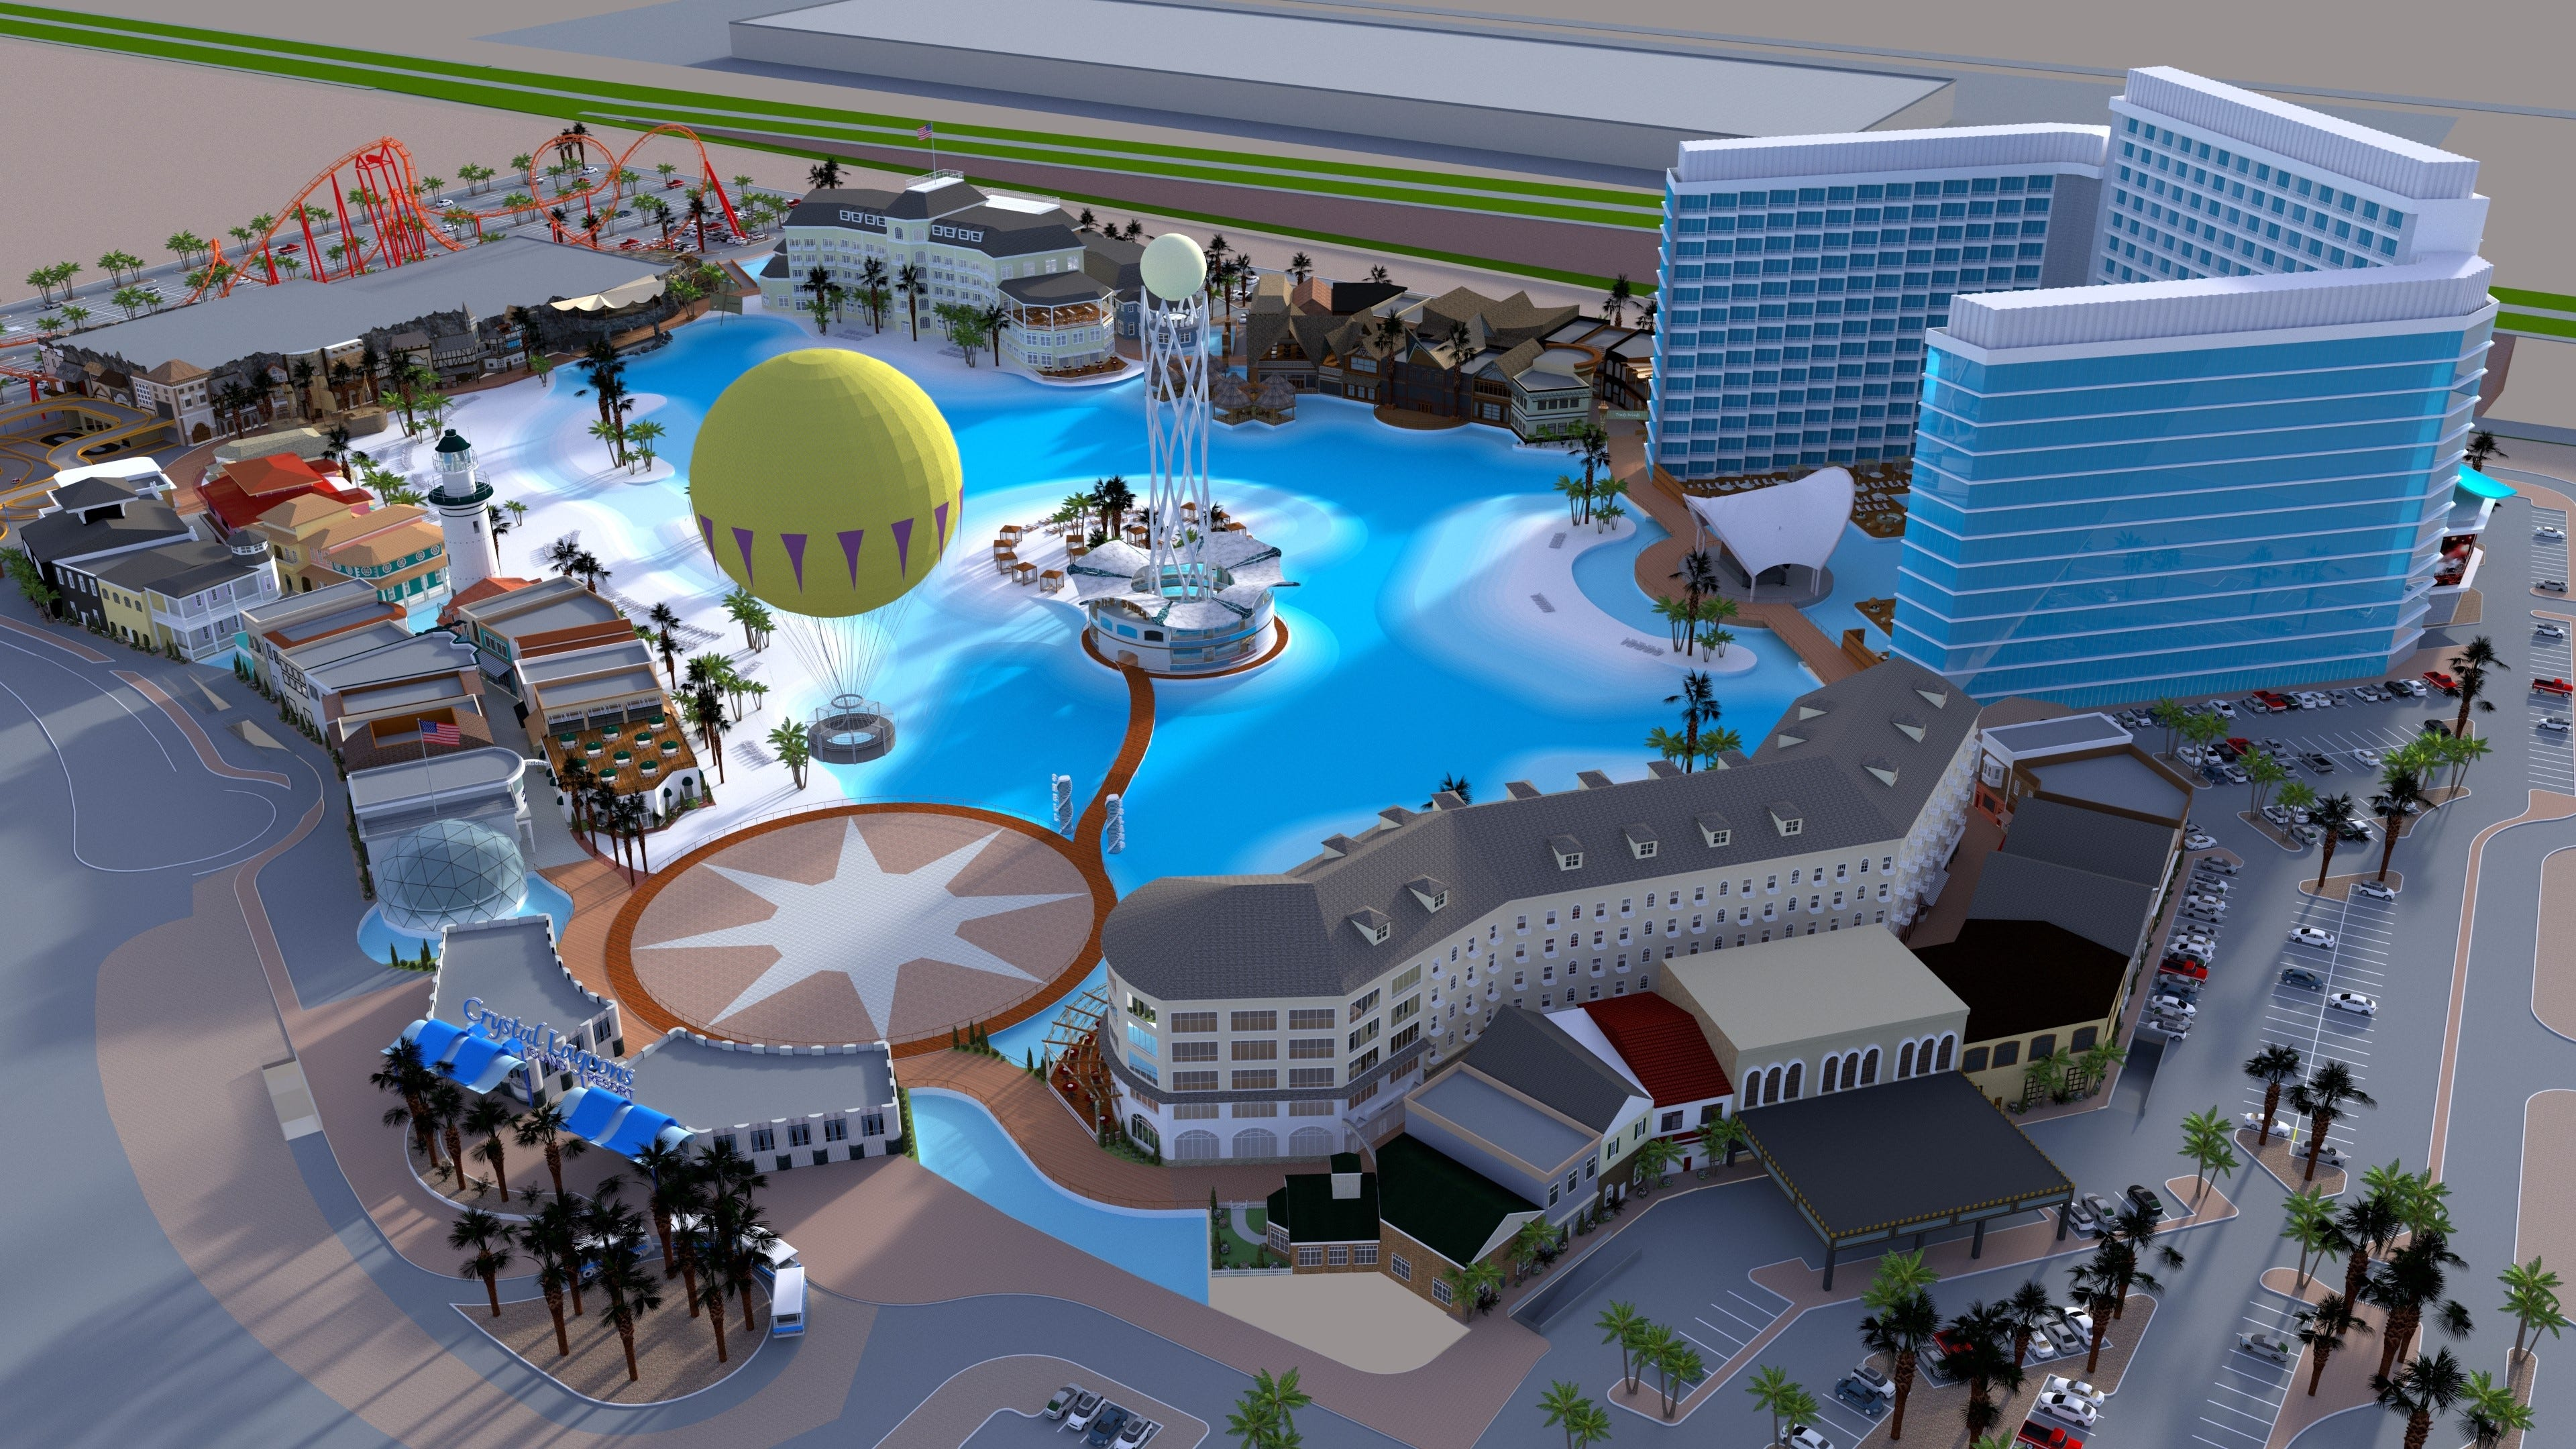 Mattel theme park coming to Arizona, complete with with Hot Wheels roller coaster